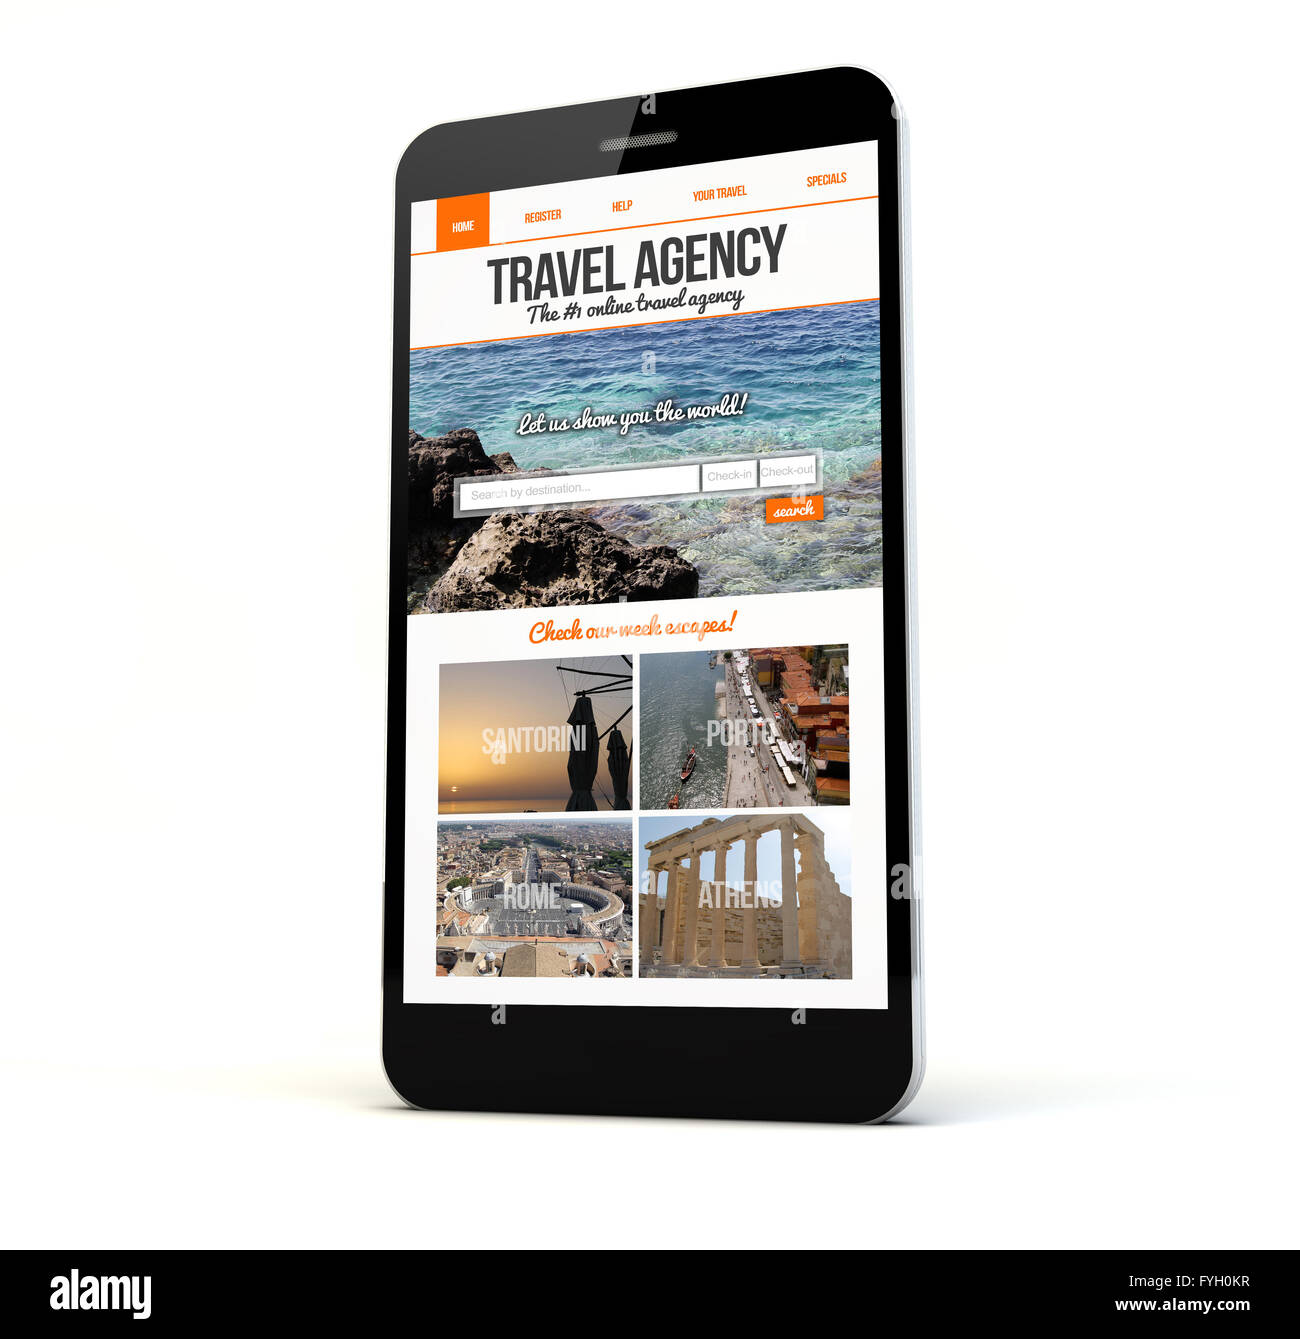 render of a phone with travel agency website on the screen isolated. Screen graphics are made up. - Stock Image